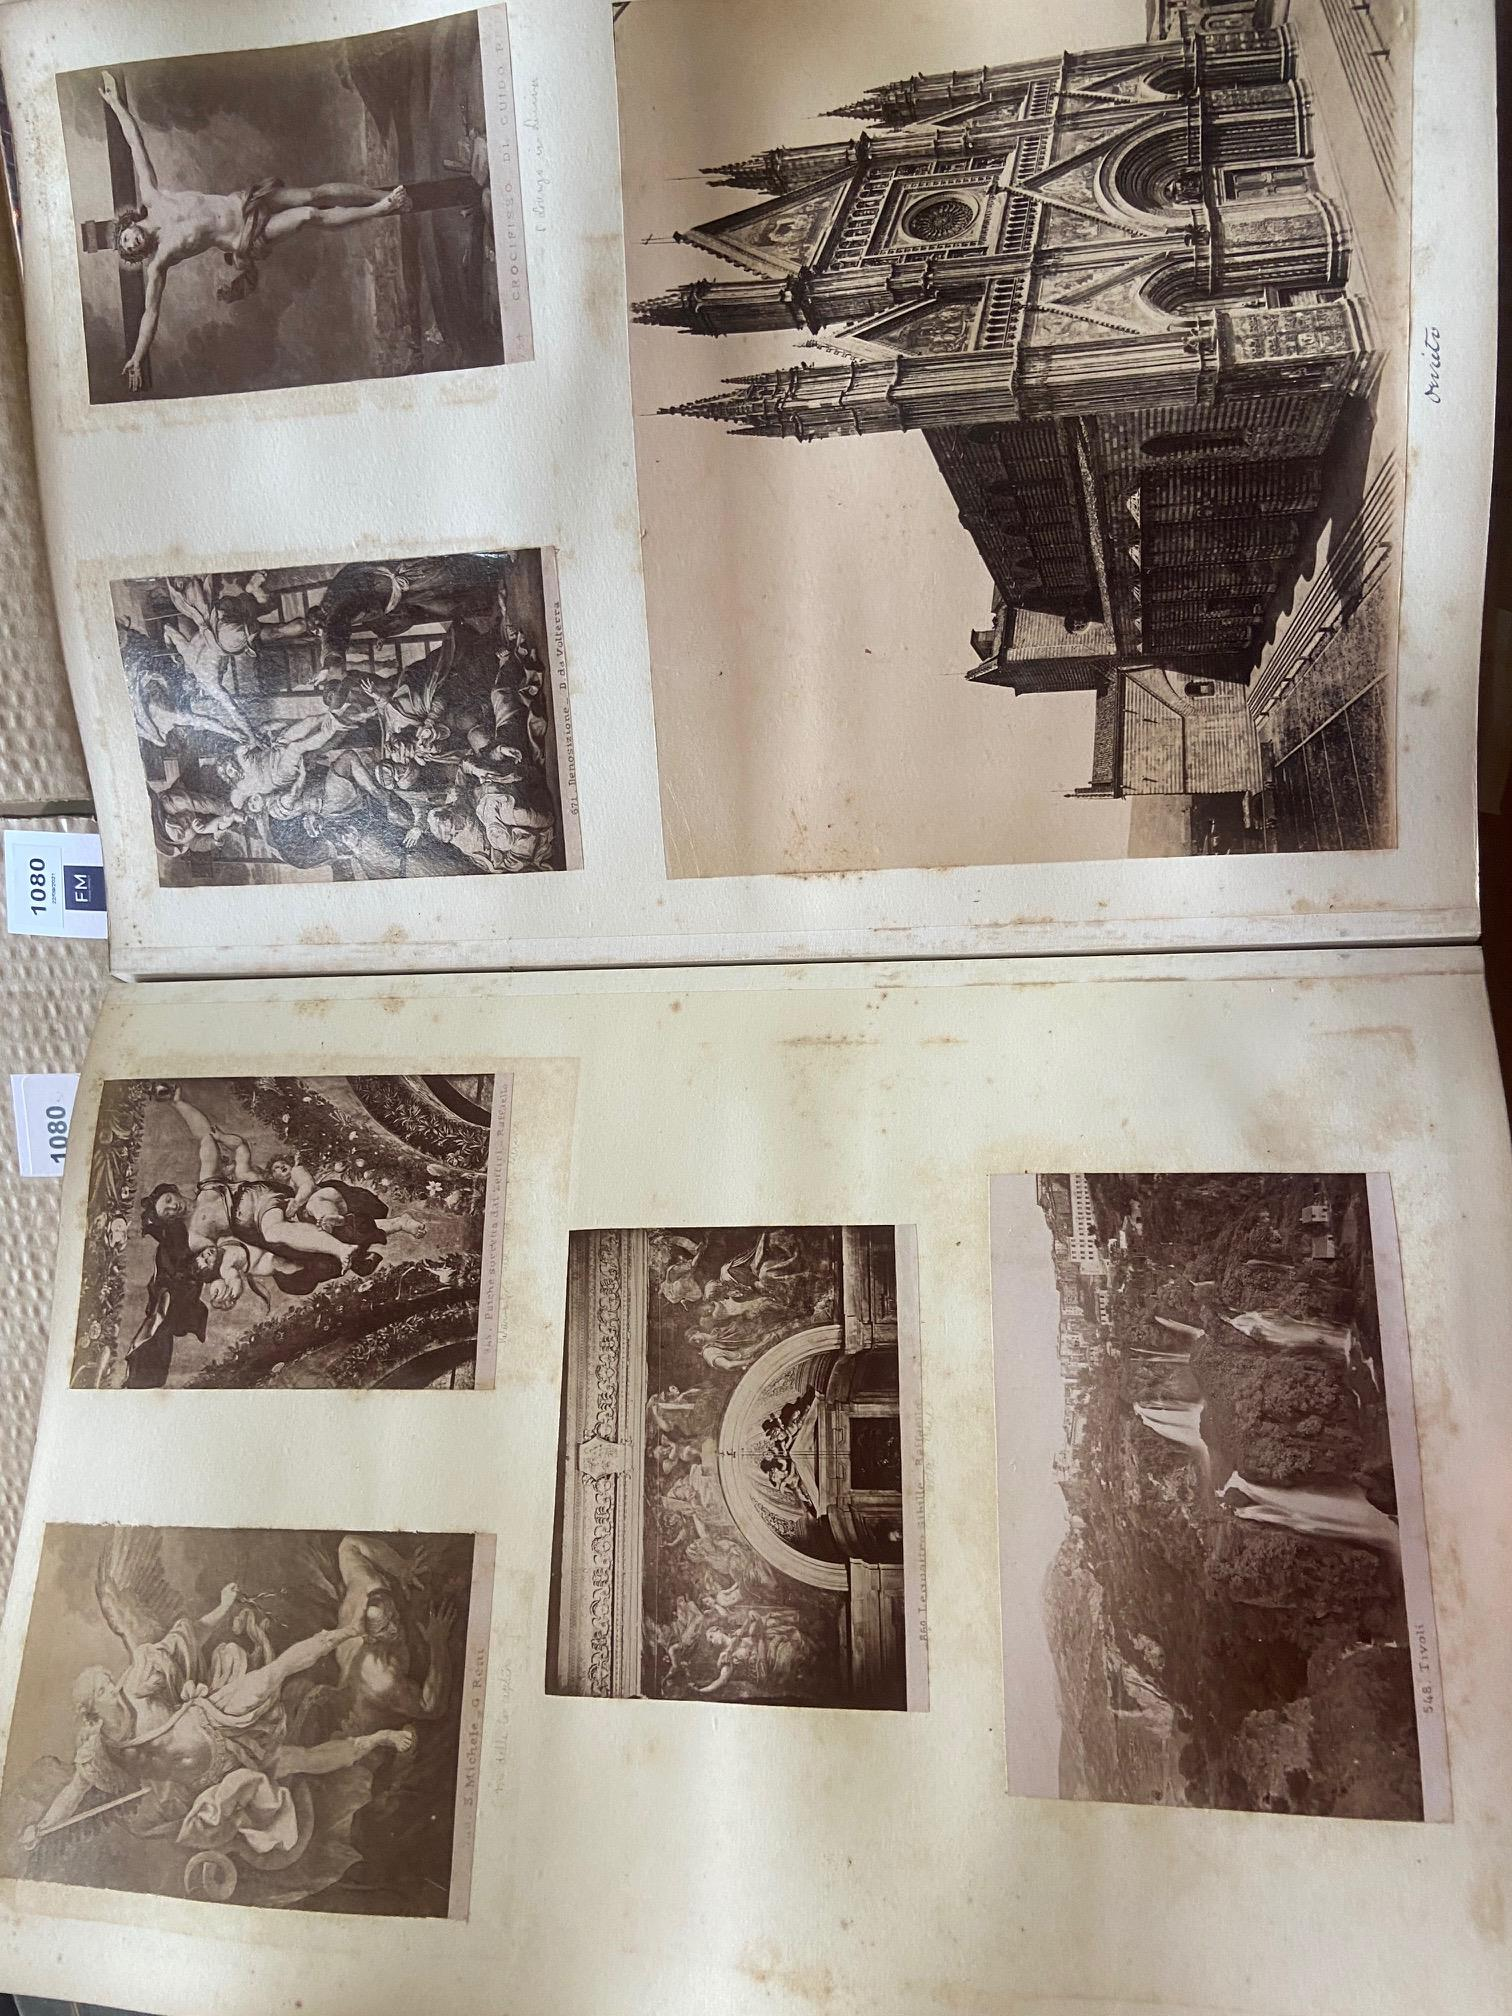 Photographs: Two large folio Albums of Photographs, each c. 1870 - 1890's. One Album contains - Image 29 of 31